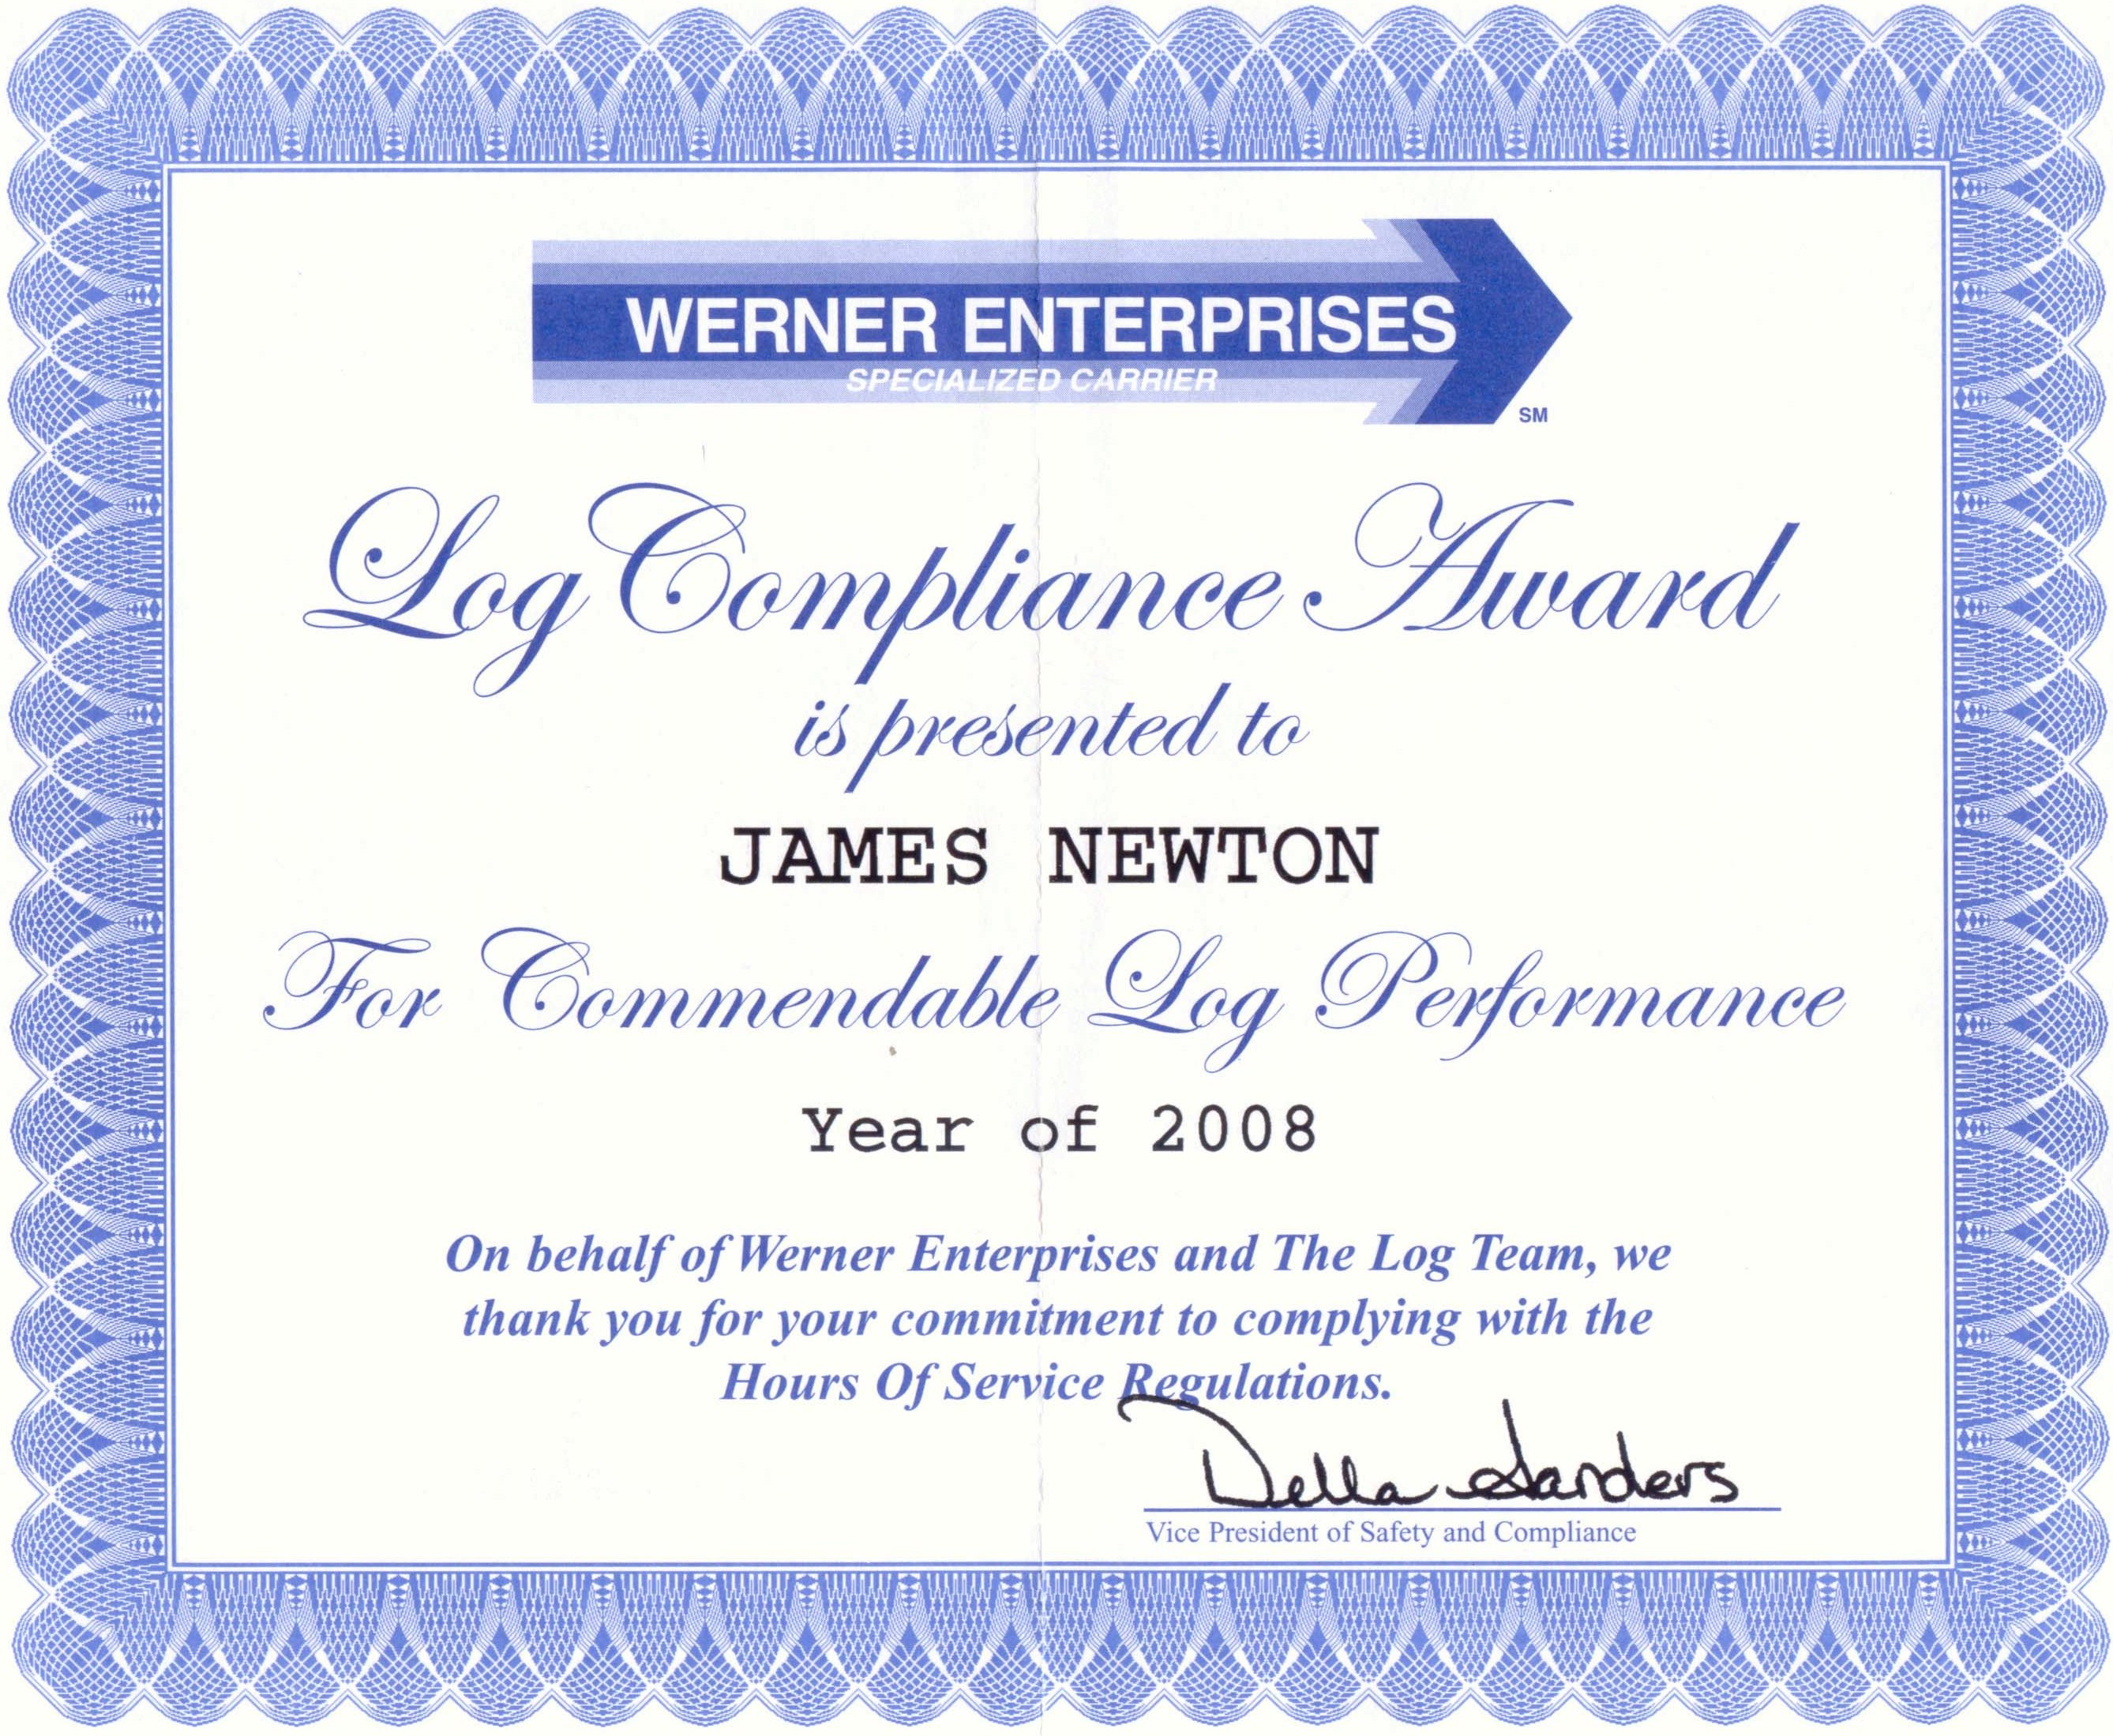 james m newton awards awards that indicated great customer service and attention to detail are werner s awards for accident and on time 2006 2007 and the ever illusive